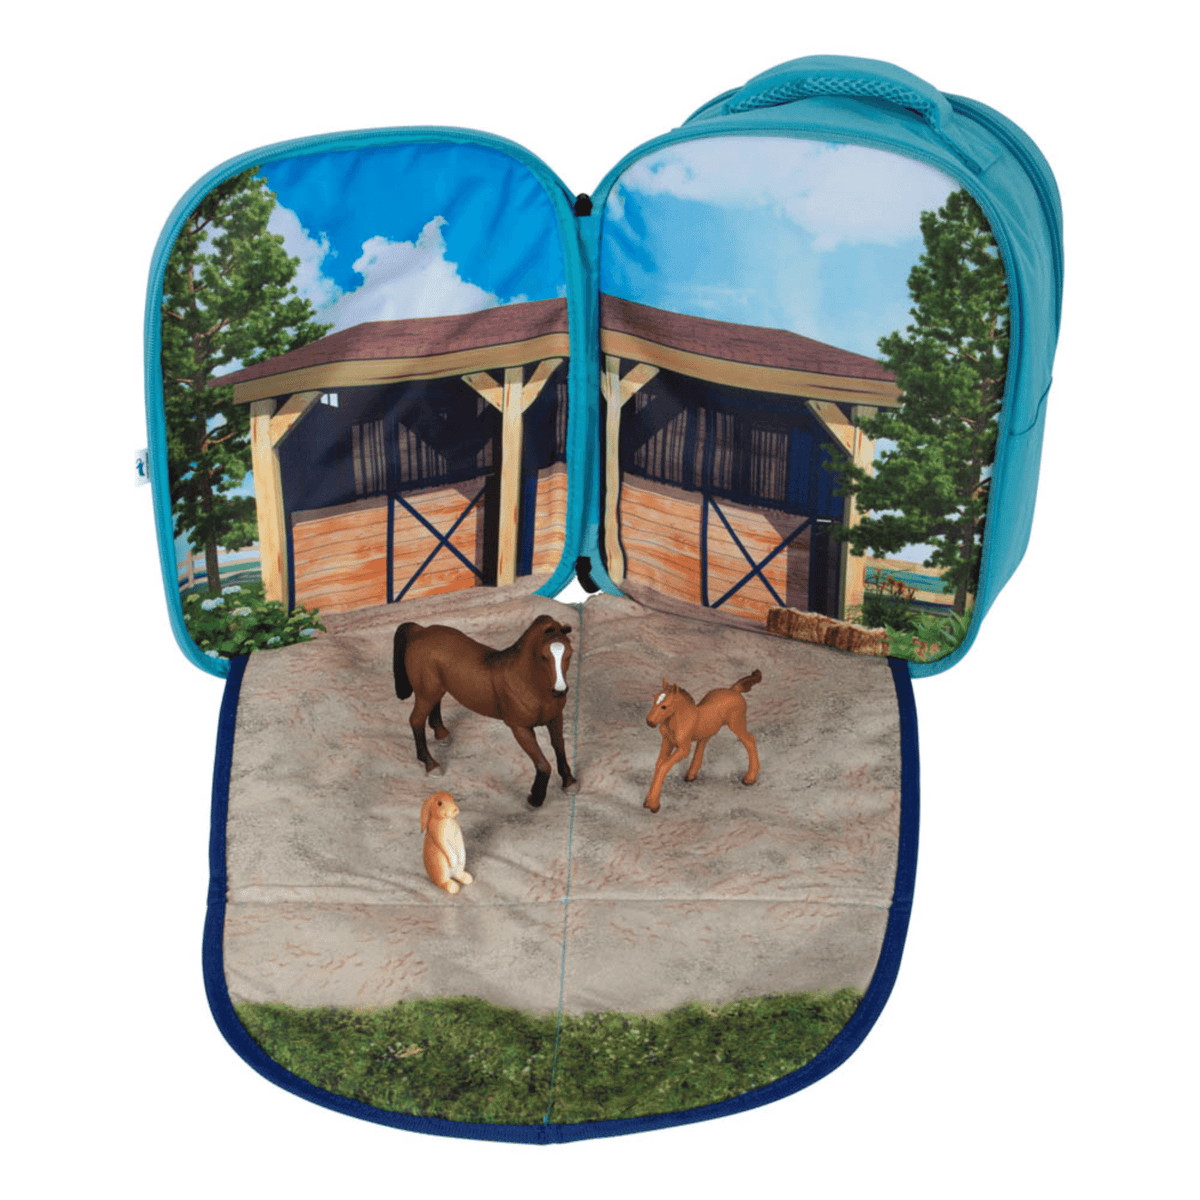 Animal Planet 3D Horse Backpack Play Set